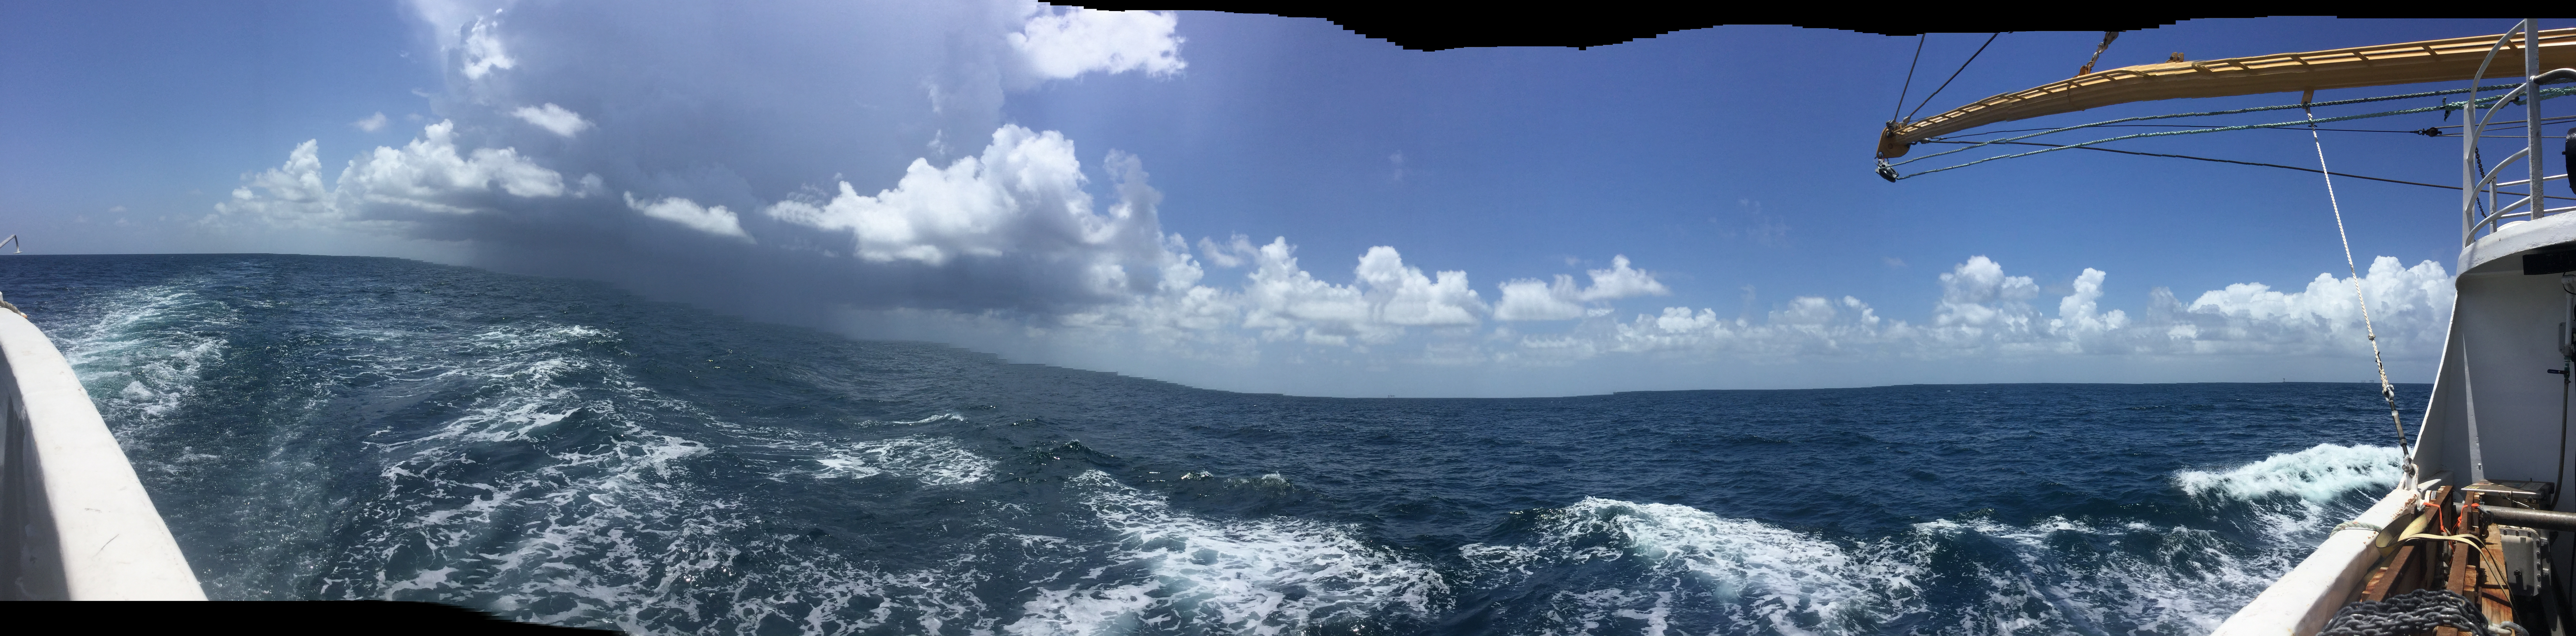 Sky and water as far as the eye can see. (It's hard to take a steady shot on a rocking boat!)